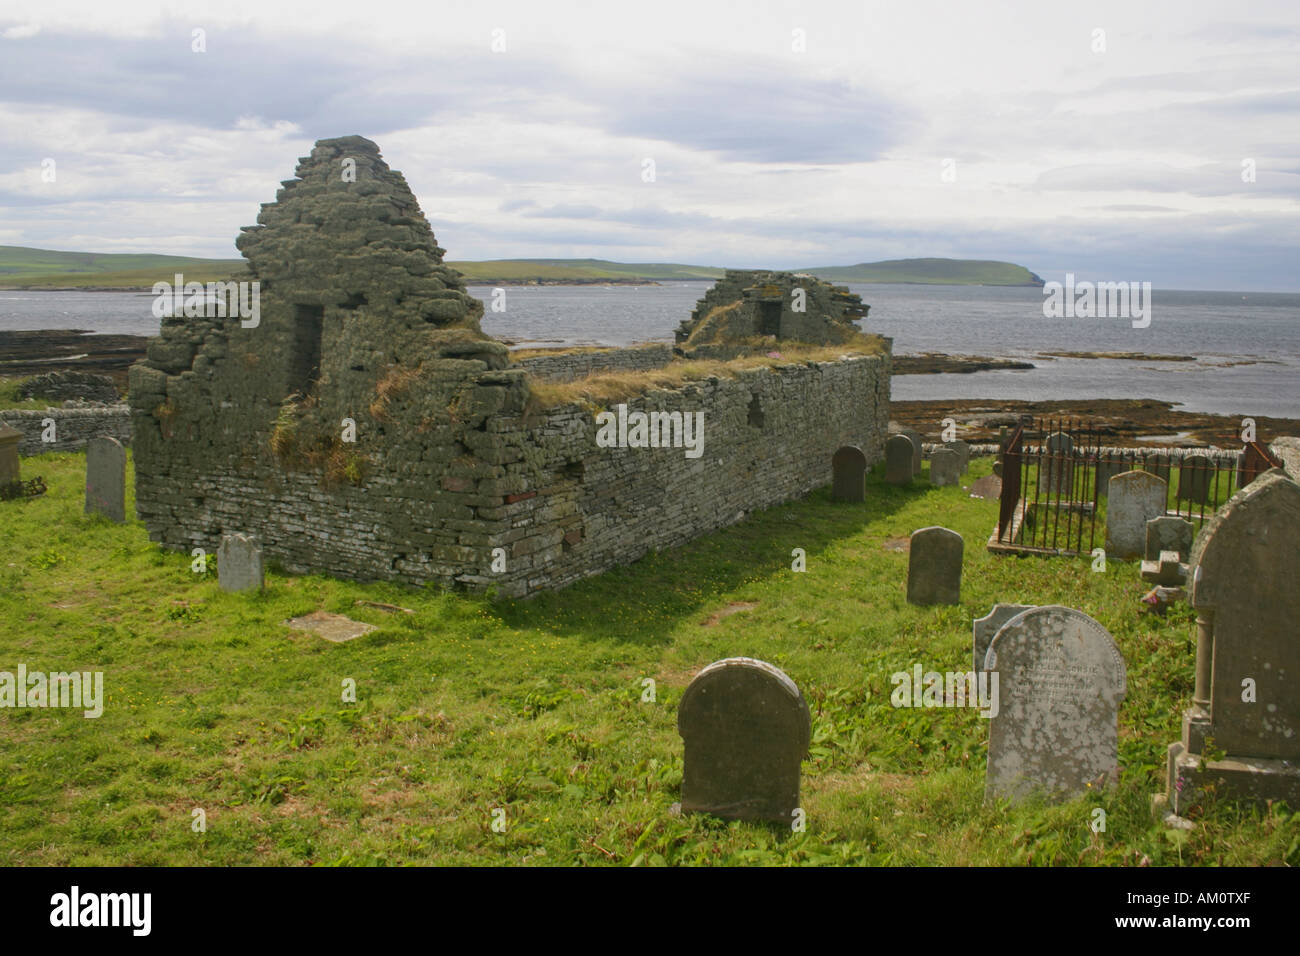 The Westness farmstead at Skaill, Rousay, Orkney - Stock Image